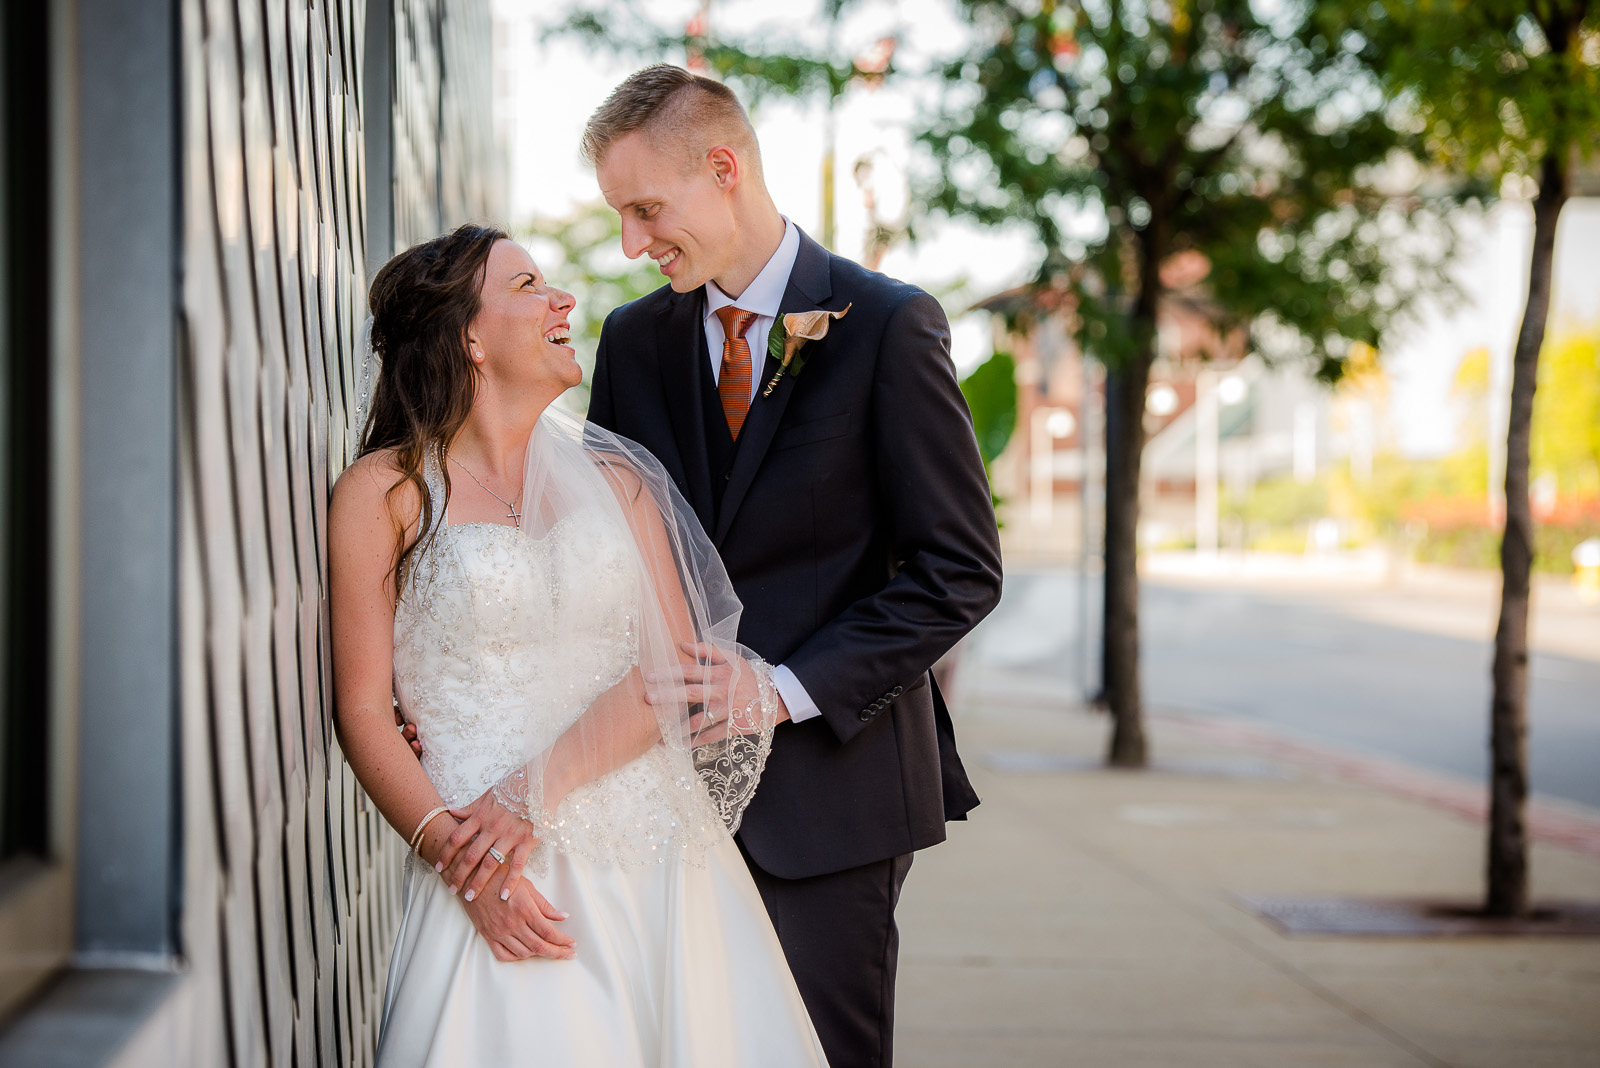 Eric_and_Christy_Photography_Blog_2018_Portraits-6